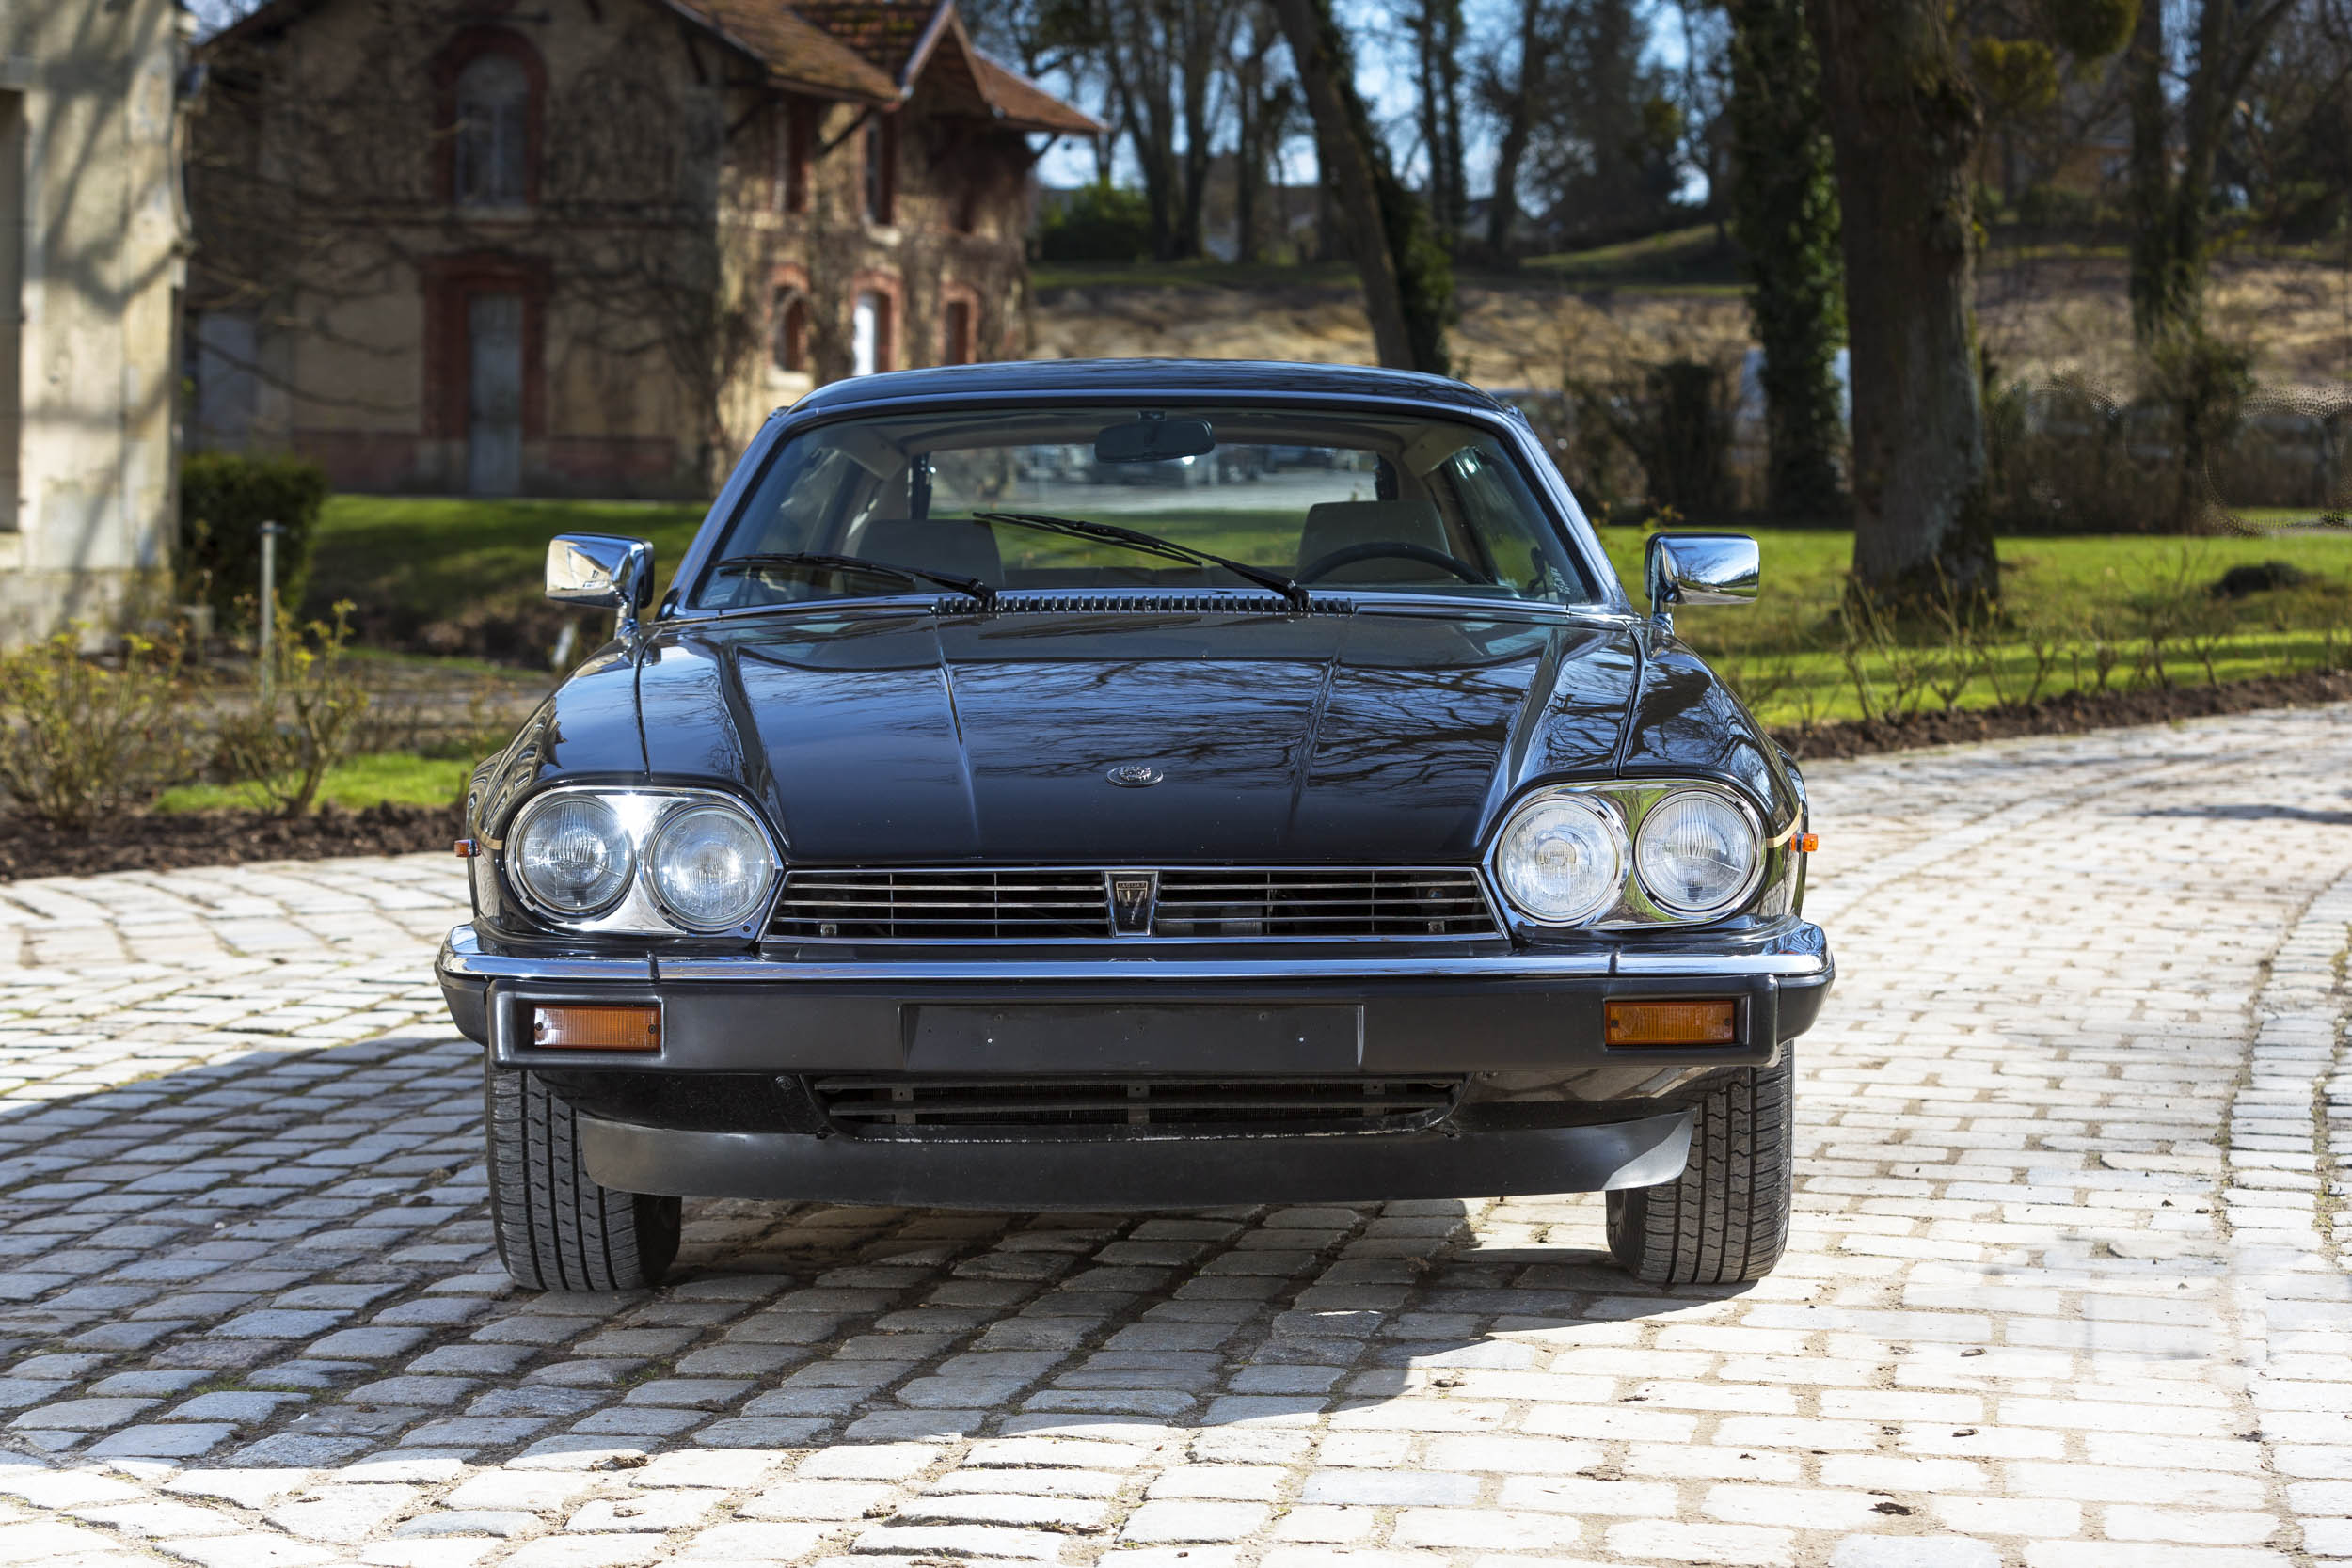 1984 Jaguar XJ-S V12 Lynx Eventer front